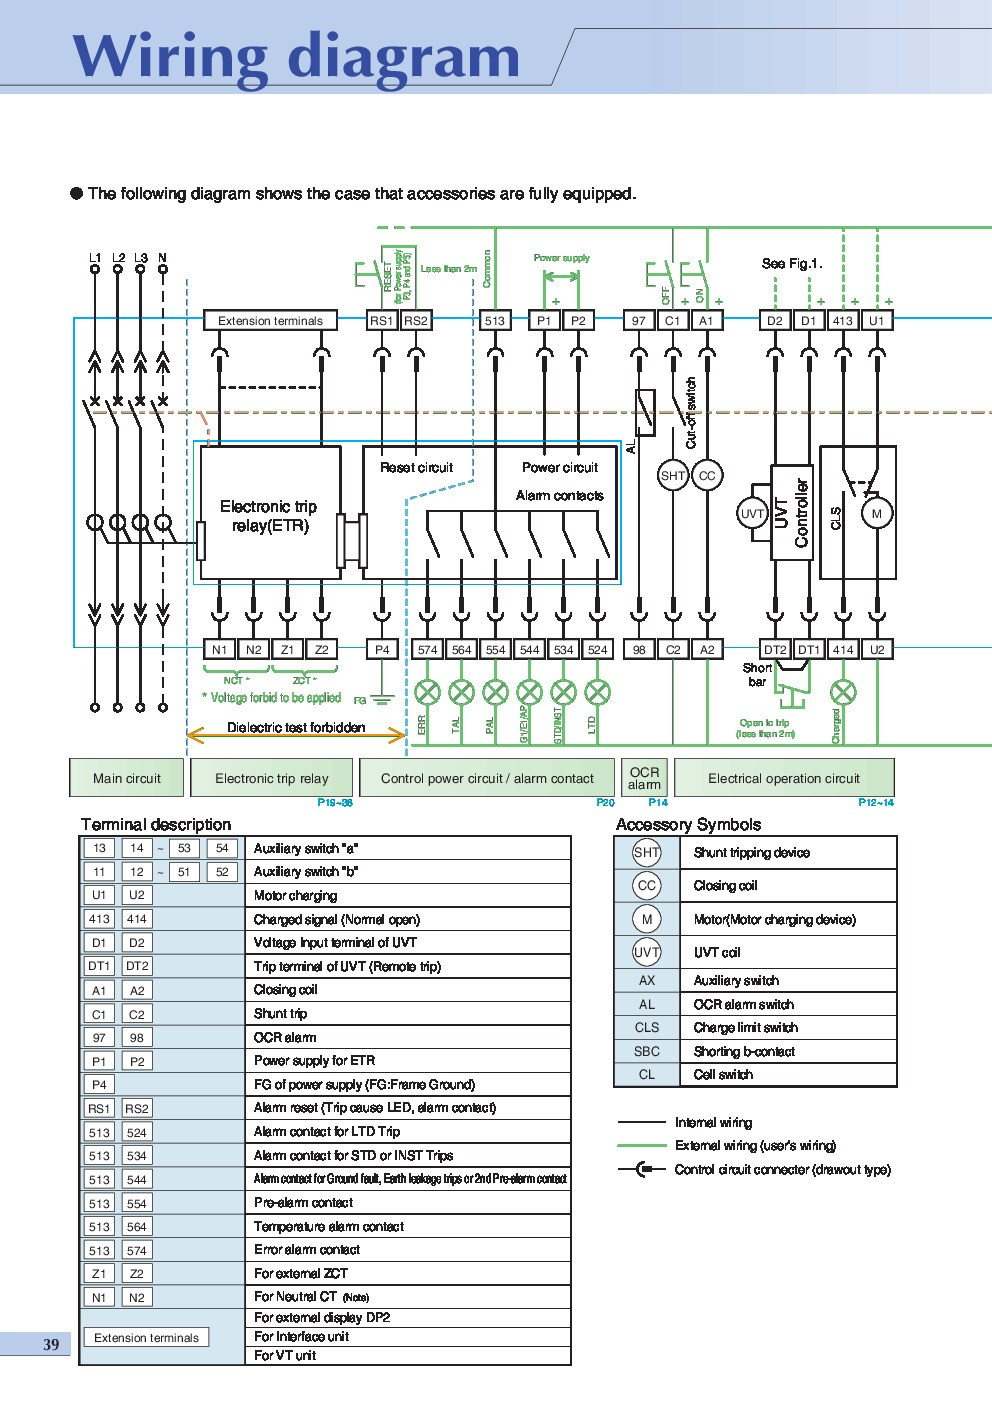 big wiring diagram toko alat alat listrik online toko alat alat acb panel wiring diagram at bakdesigns.co